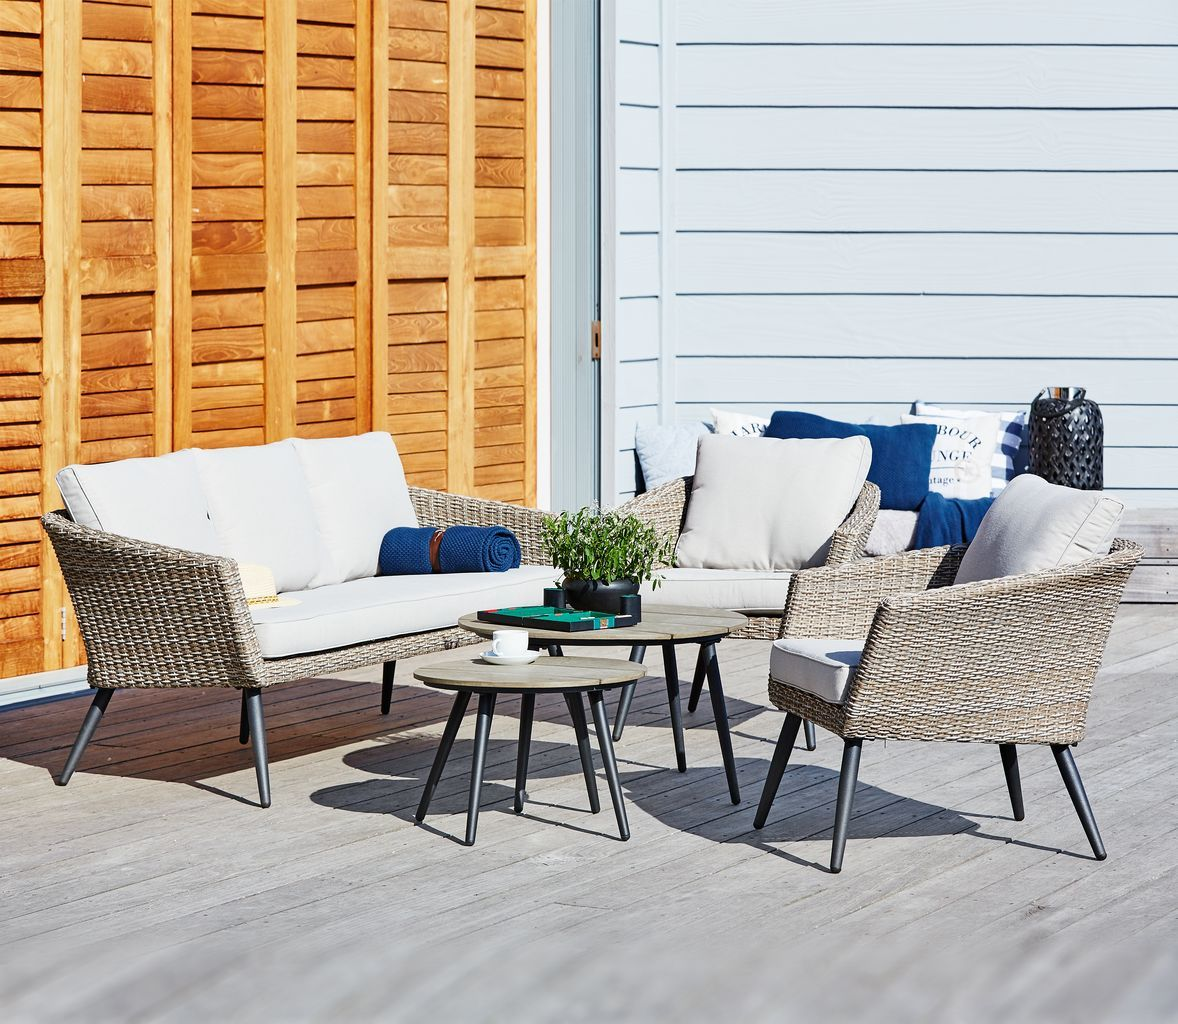 Garden Lounge Furniture Set Beautifully In A Scandinavian Style Style With Cushions And Thro Scandinavian Outdoor Furniture Outdoor Furniture Design Furniture